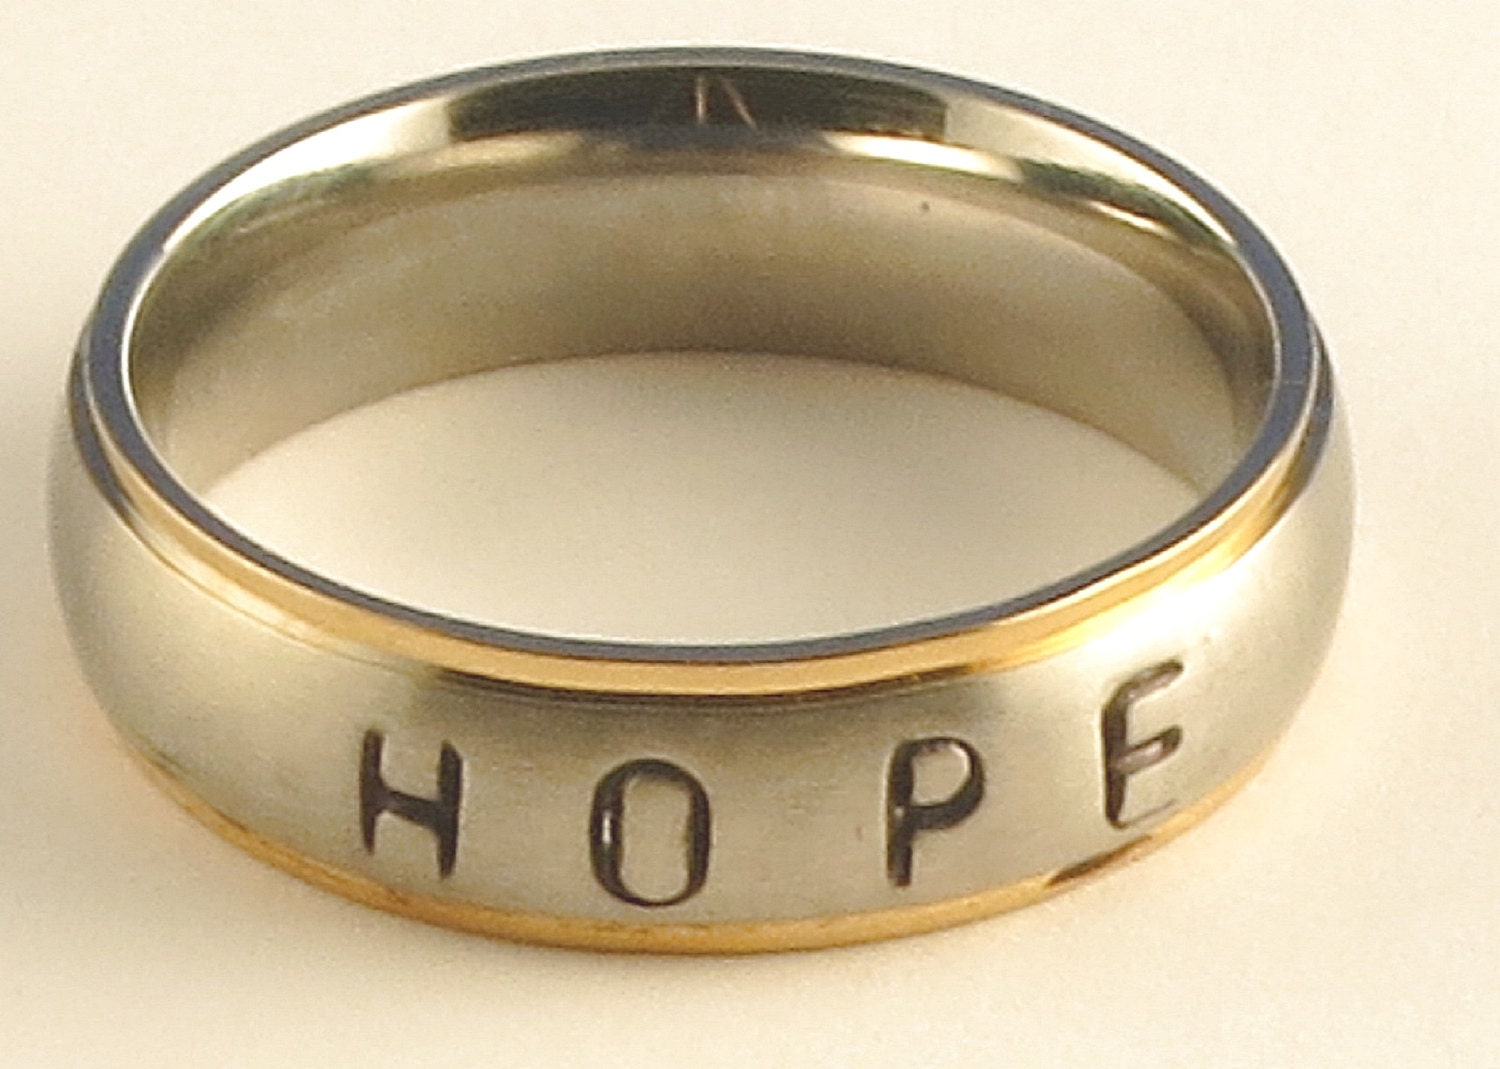 HOPE Stainless Steel Gold Tone Edge Comfort Fit Name Ring 6mm